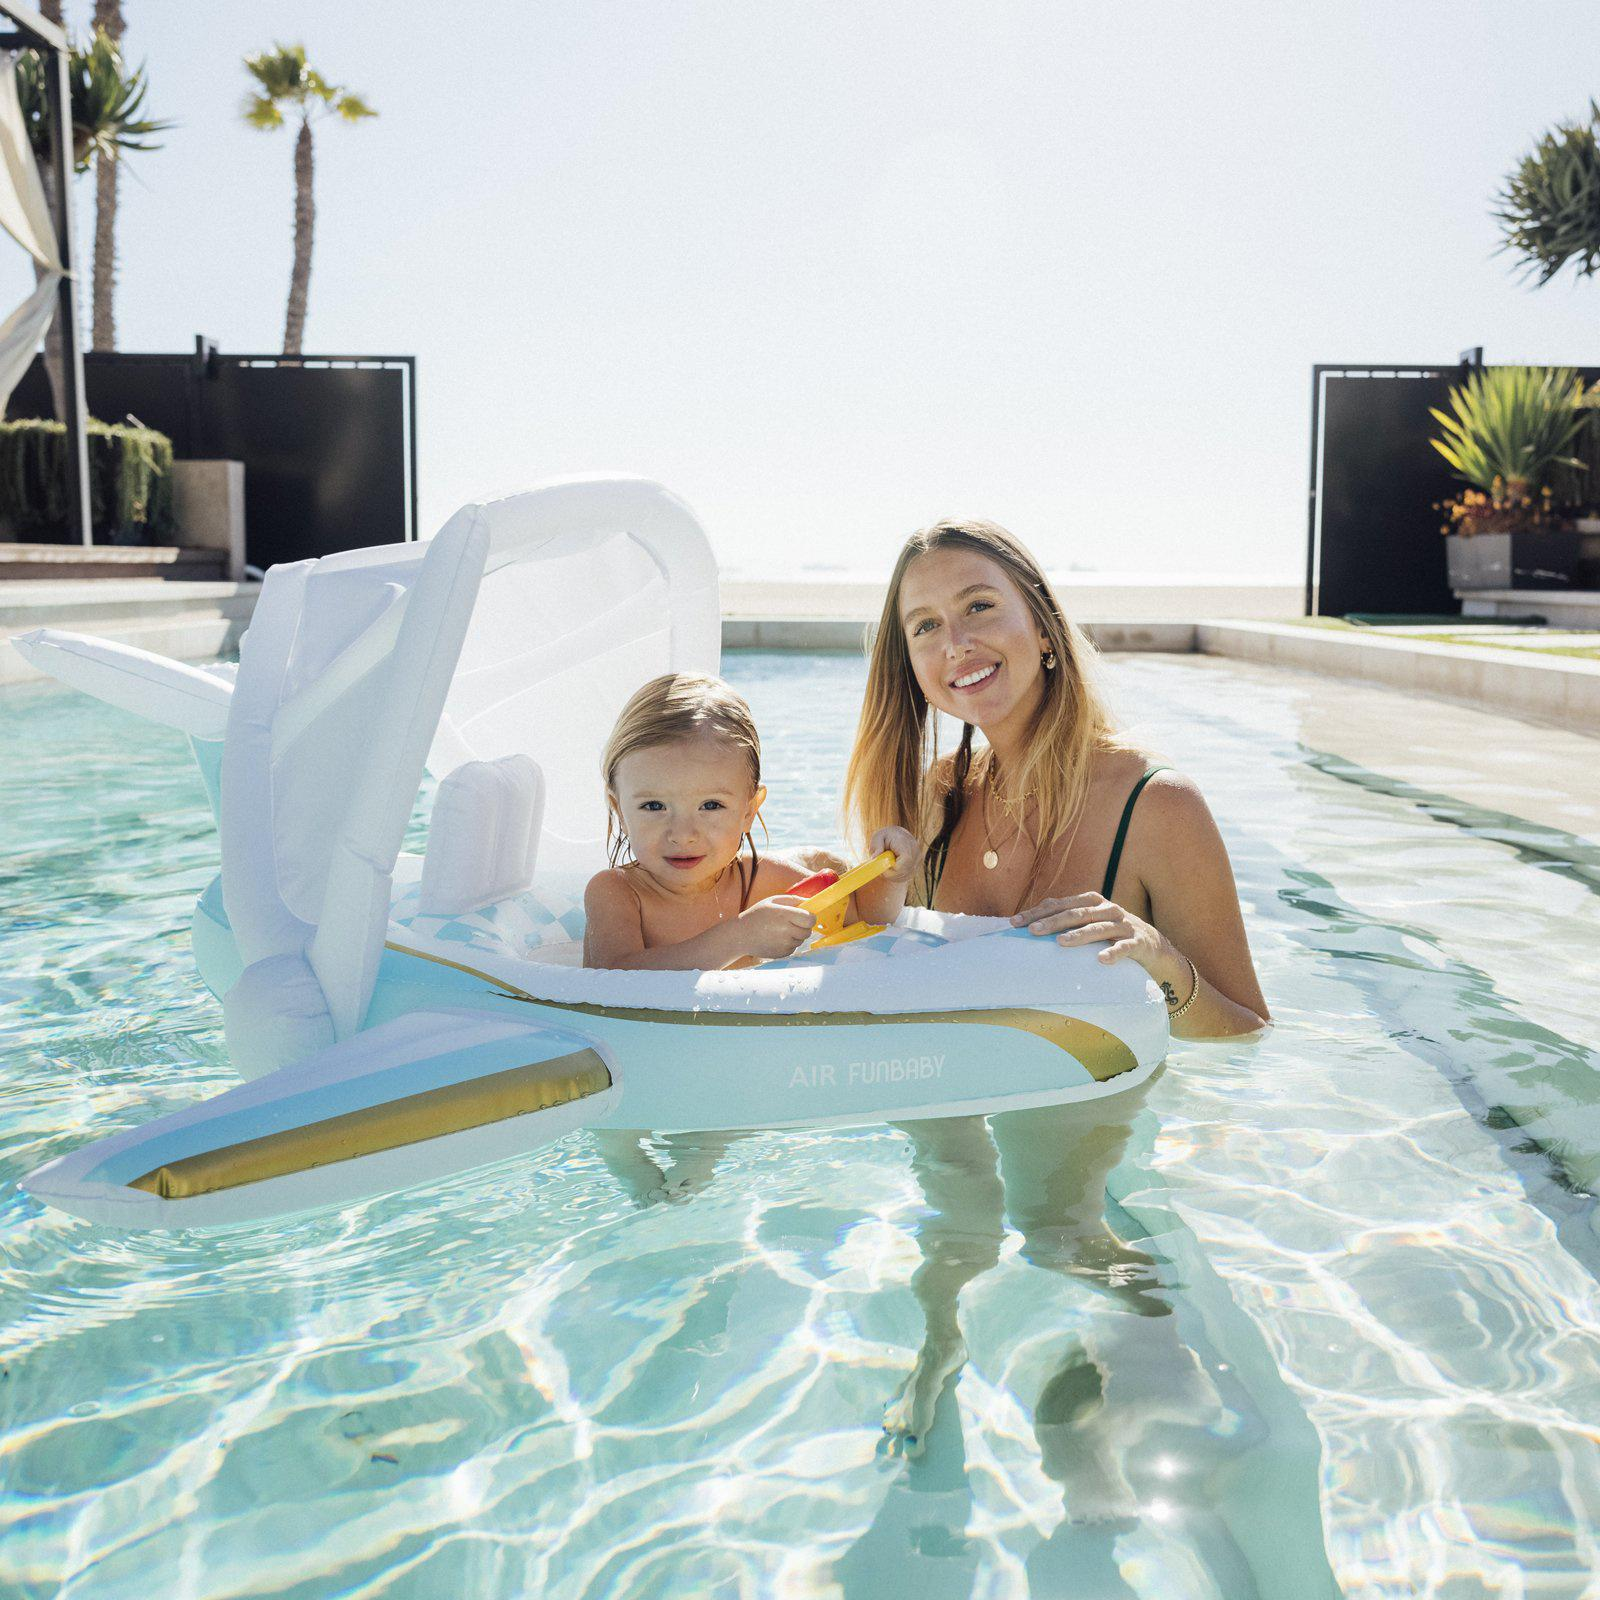 Funboy just launched Funbaby, a line of fun floaties for kids.